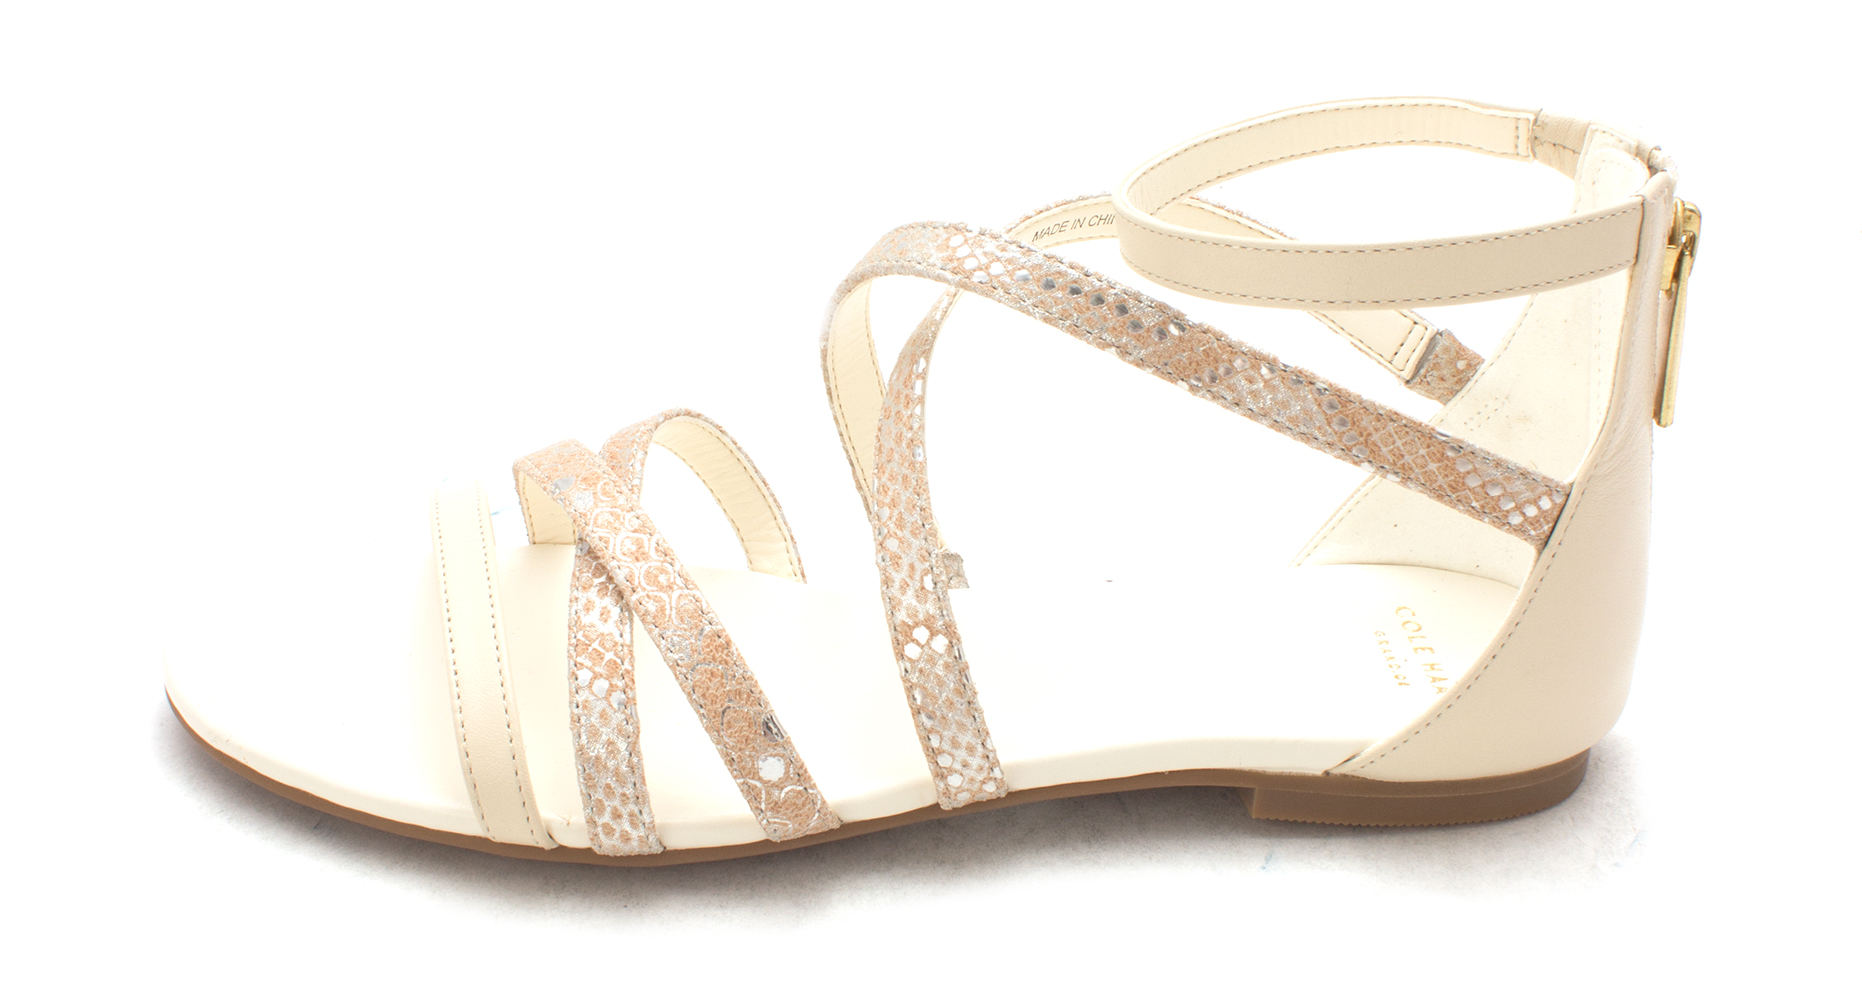 Cole Haan Womens Lilsam Open Toe Casual Strappy Sandals Beige Size 60